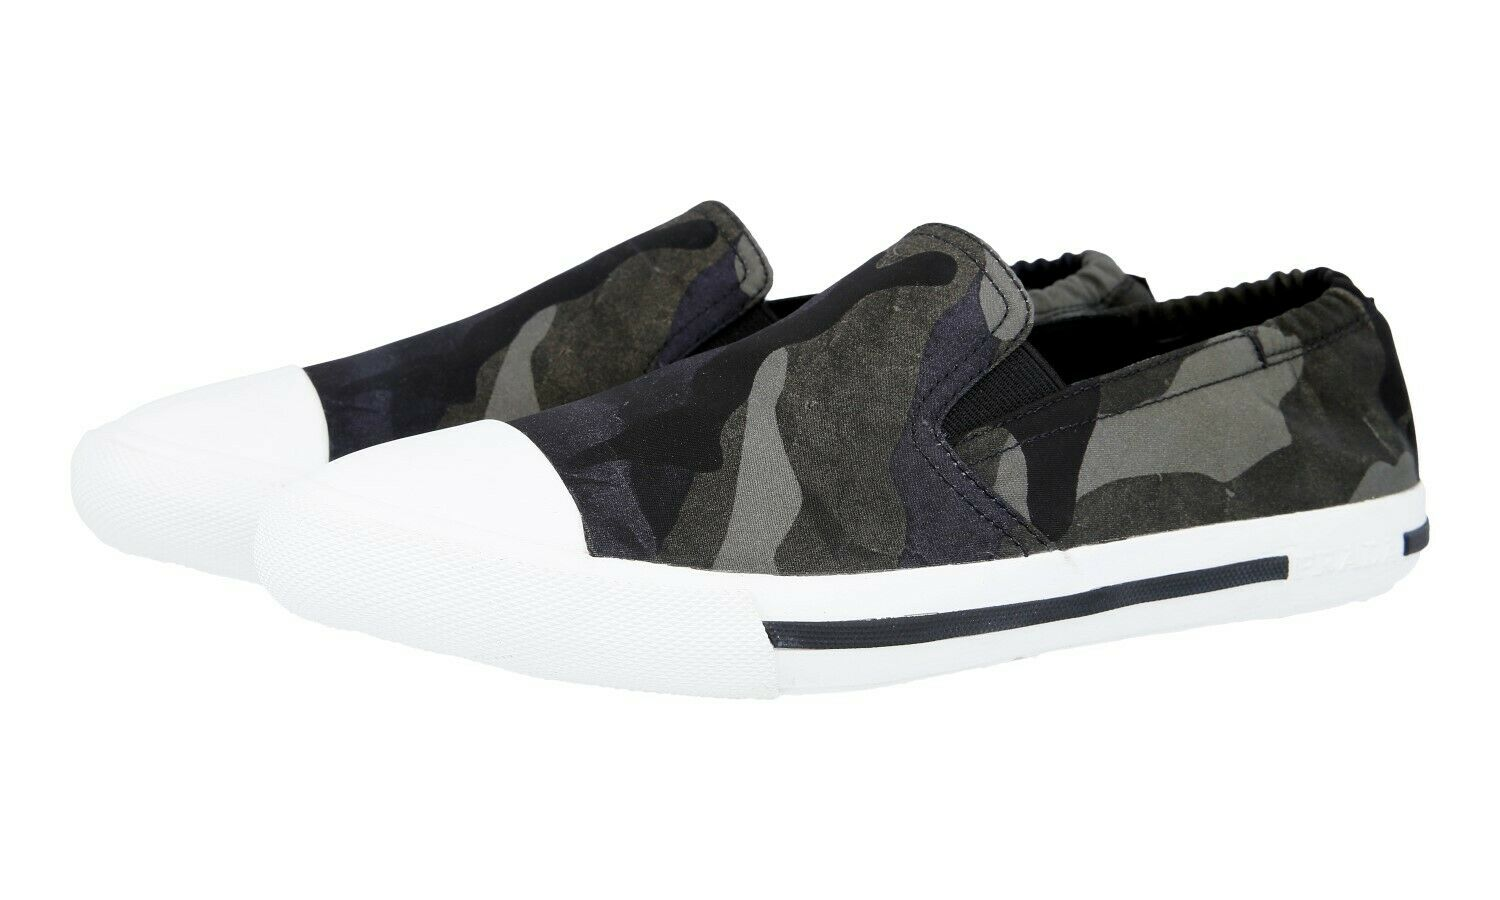 AUTH LUXURY PRADA TRAINERS SHOES 4D3226 CAMOUFLAGE  FUMO 6,5 40,5 41